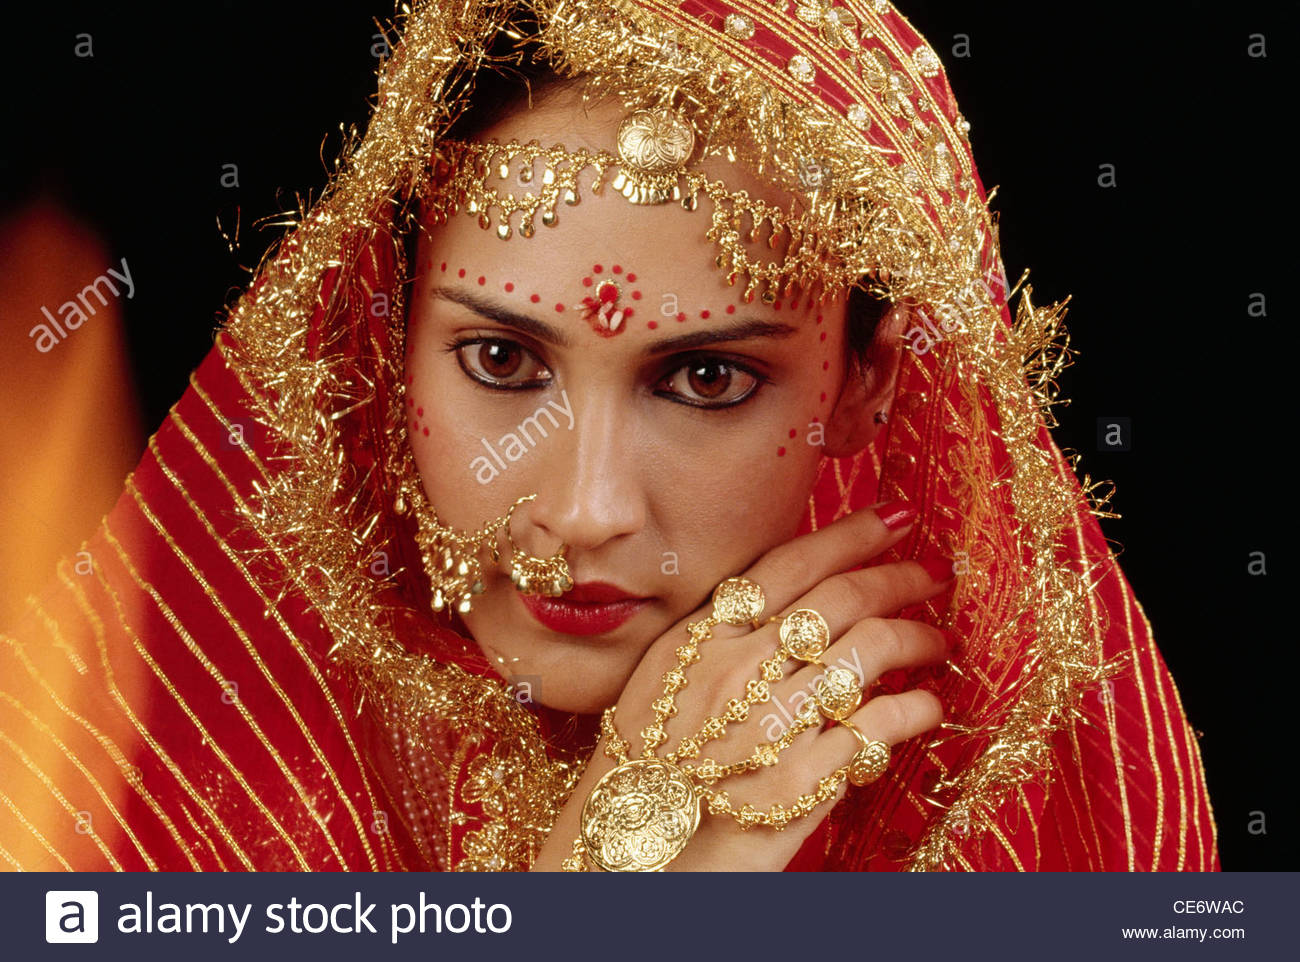 NNA 85215 : indian bride wearing gold hand jewellery gold nose ...